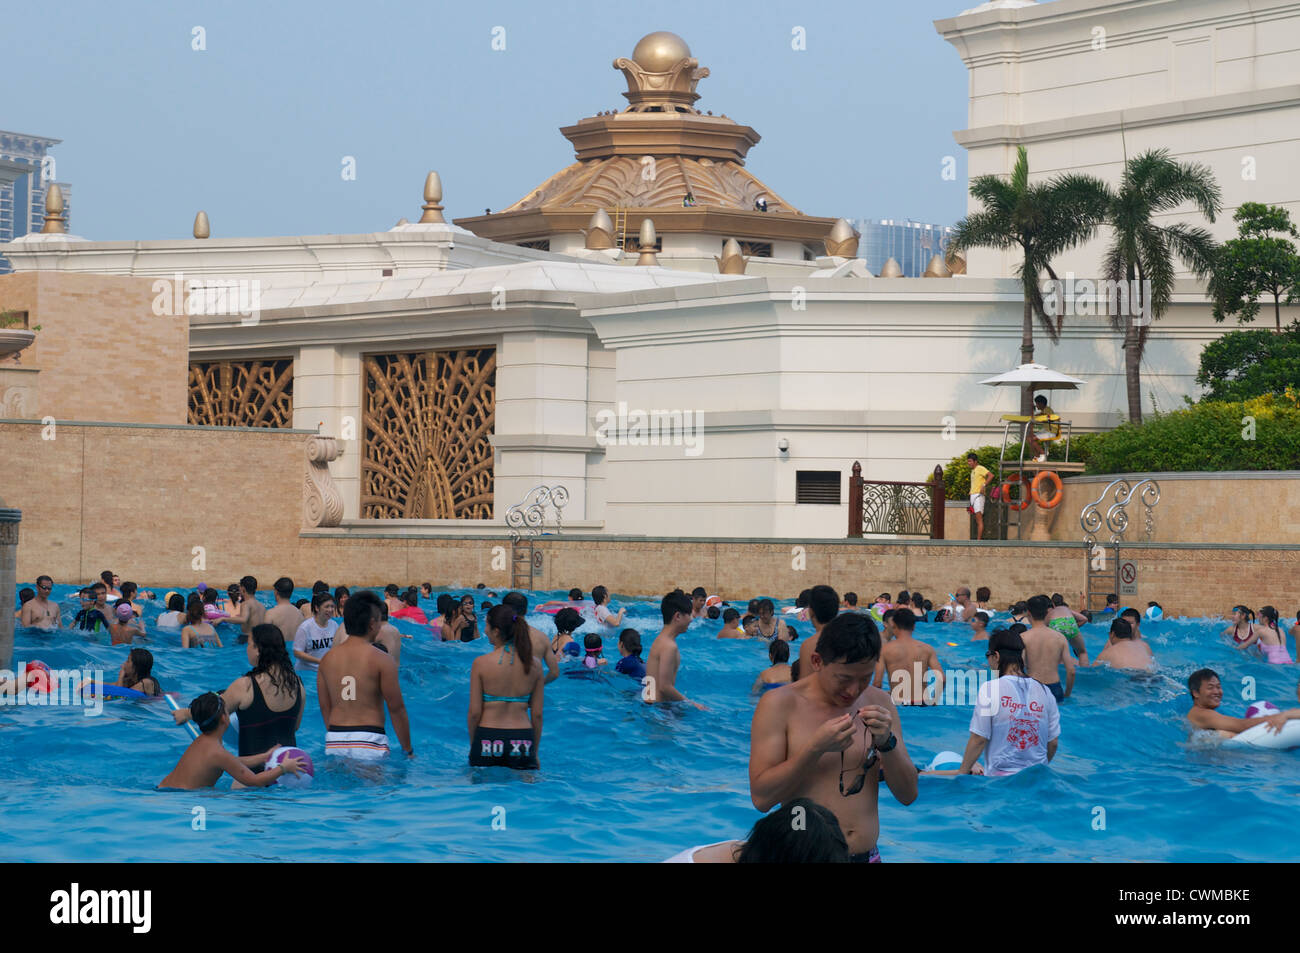 The Wave Pool At The Galaxy Hotel In Macau China Stock Photo Royalty Free Image 50235346 Alamy